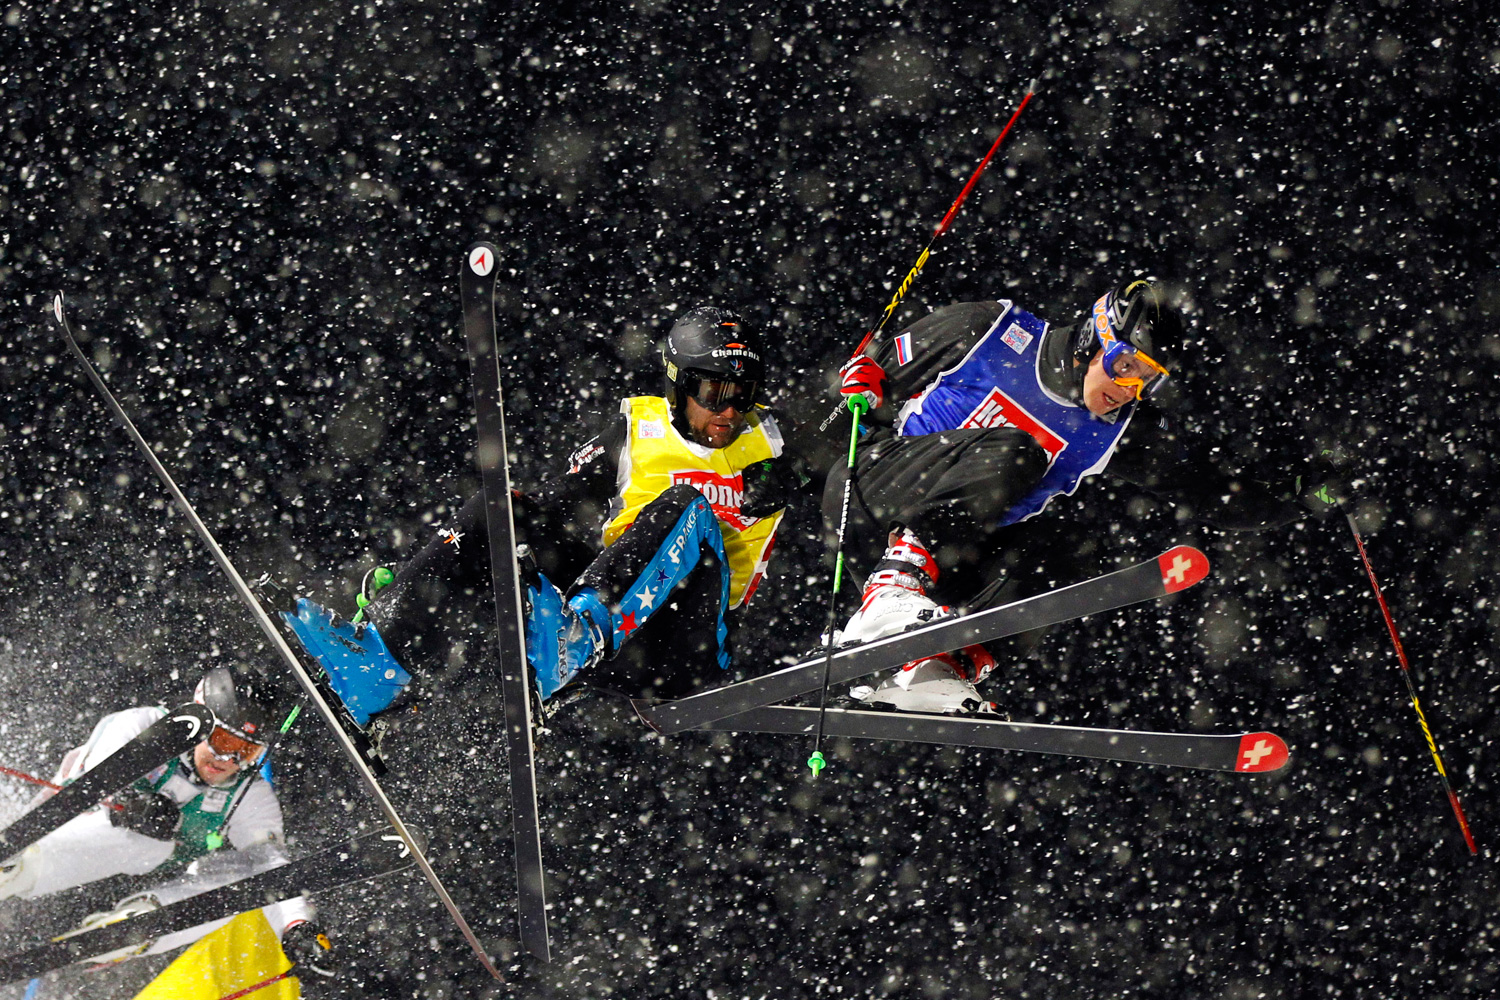 January 7, 2012. From left to right, Russia's Ivan Anikin, France's Jonas Devouassoux and Norway's Christian Mithassel ski down the slope during their run at the FIS skicross world cup event in Sankt Johann.